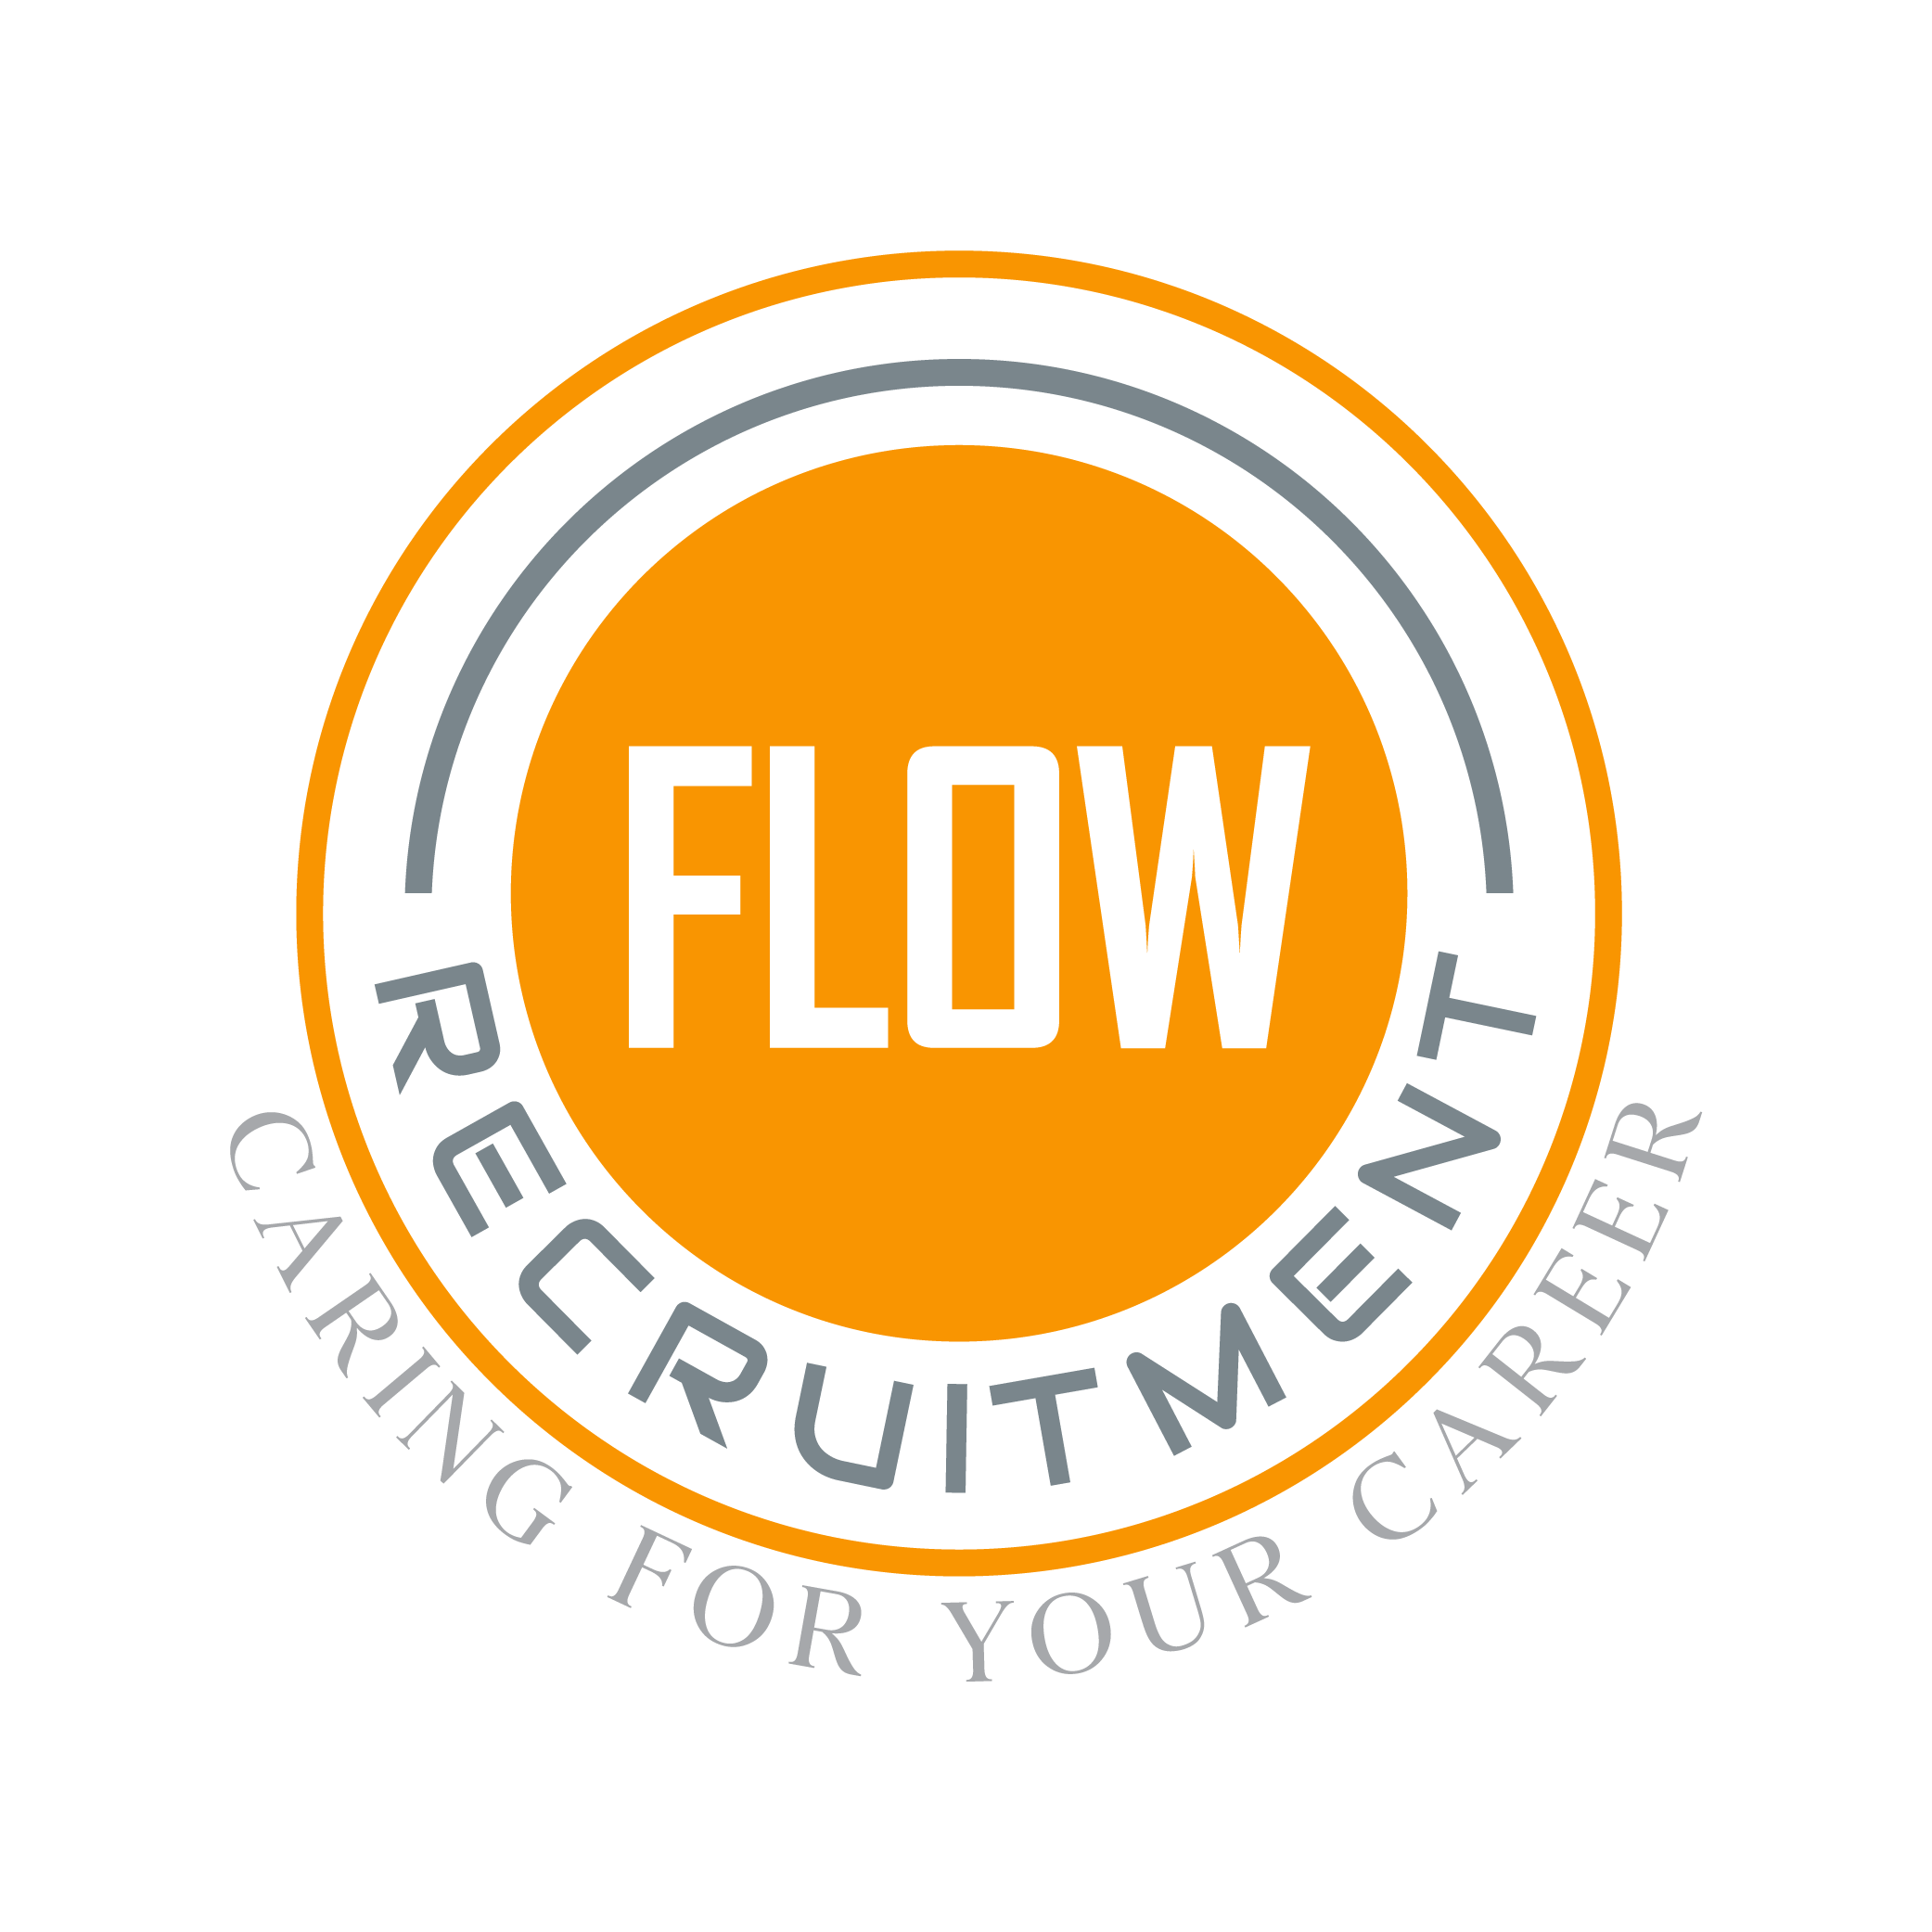 flow recruitment logo rockstar marketing